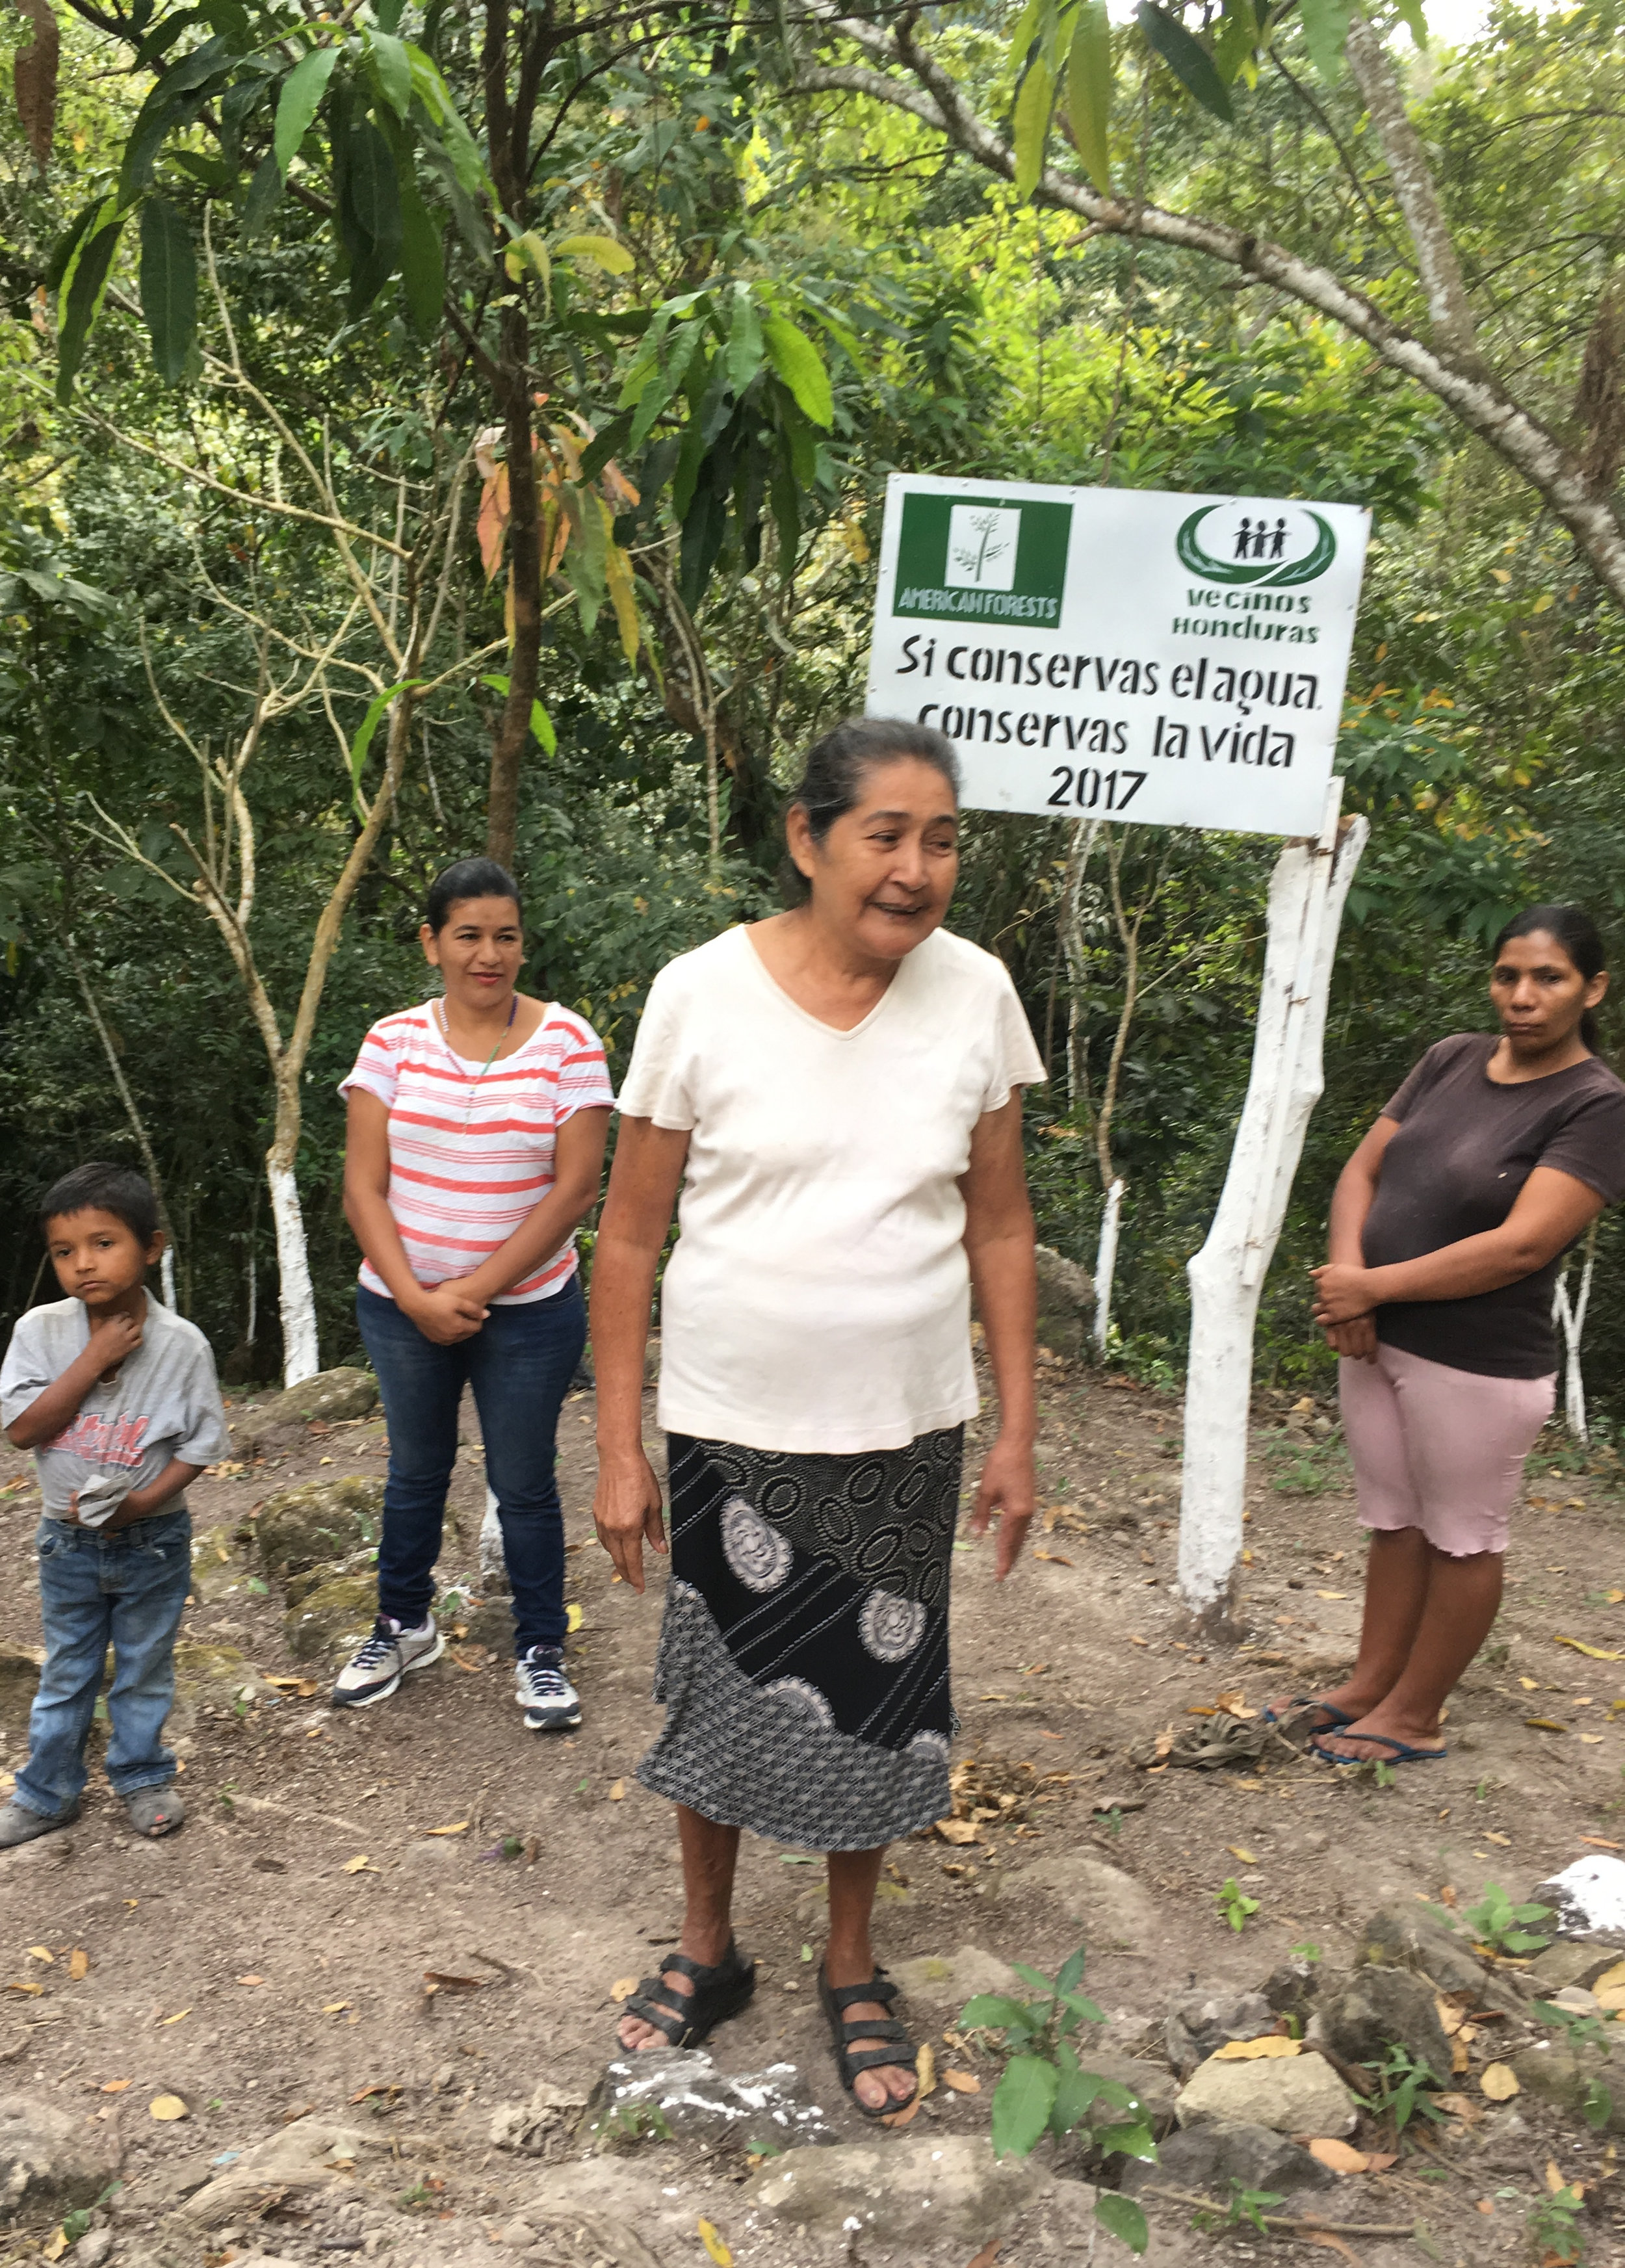 El Tulito teacher Marta Alicia speaks in praise of the new park at its opening in March 2018